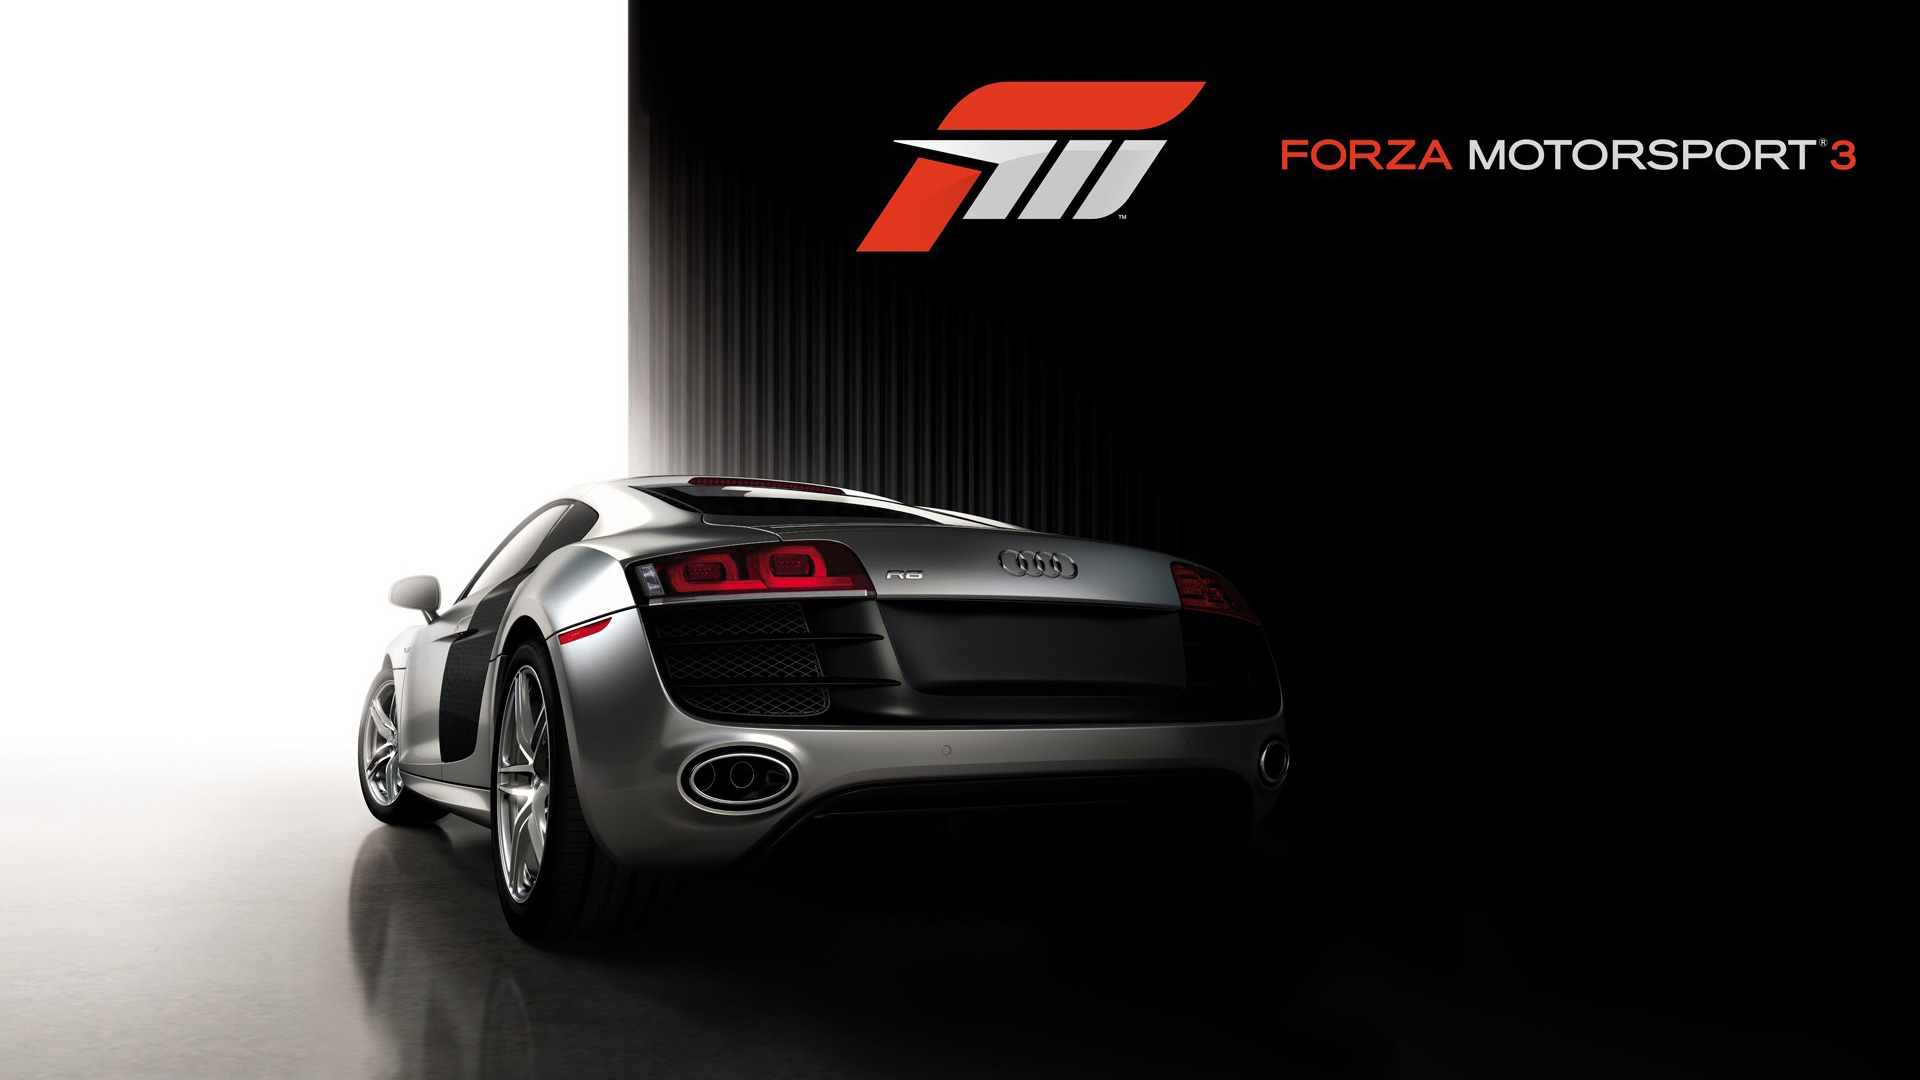 Forza Motorsport 3 Wallpaper in 1920x1080